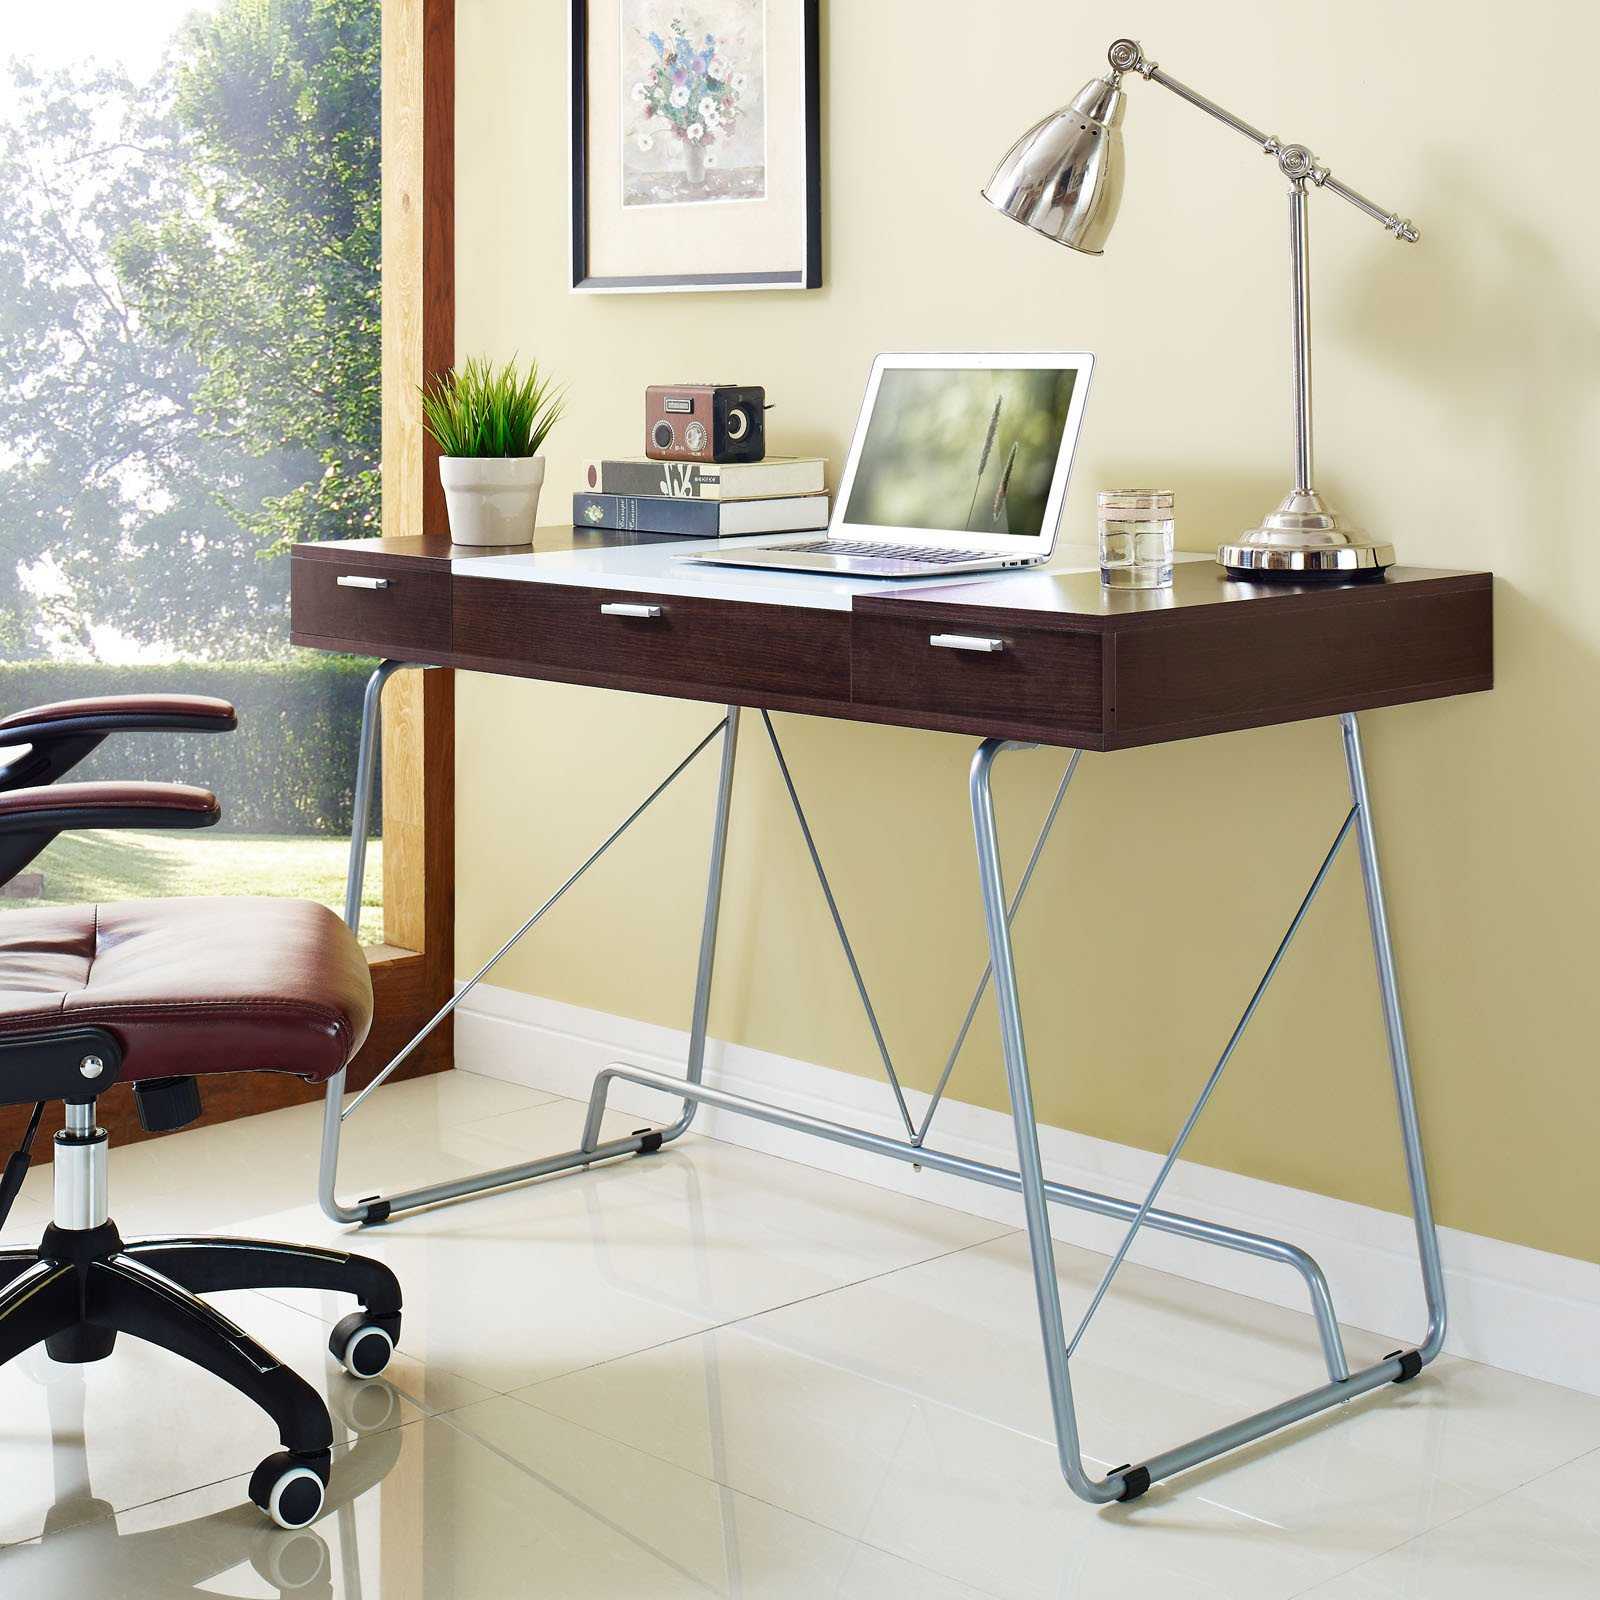 Cool office furniture environmental